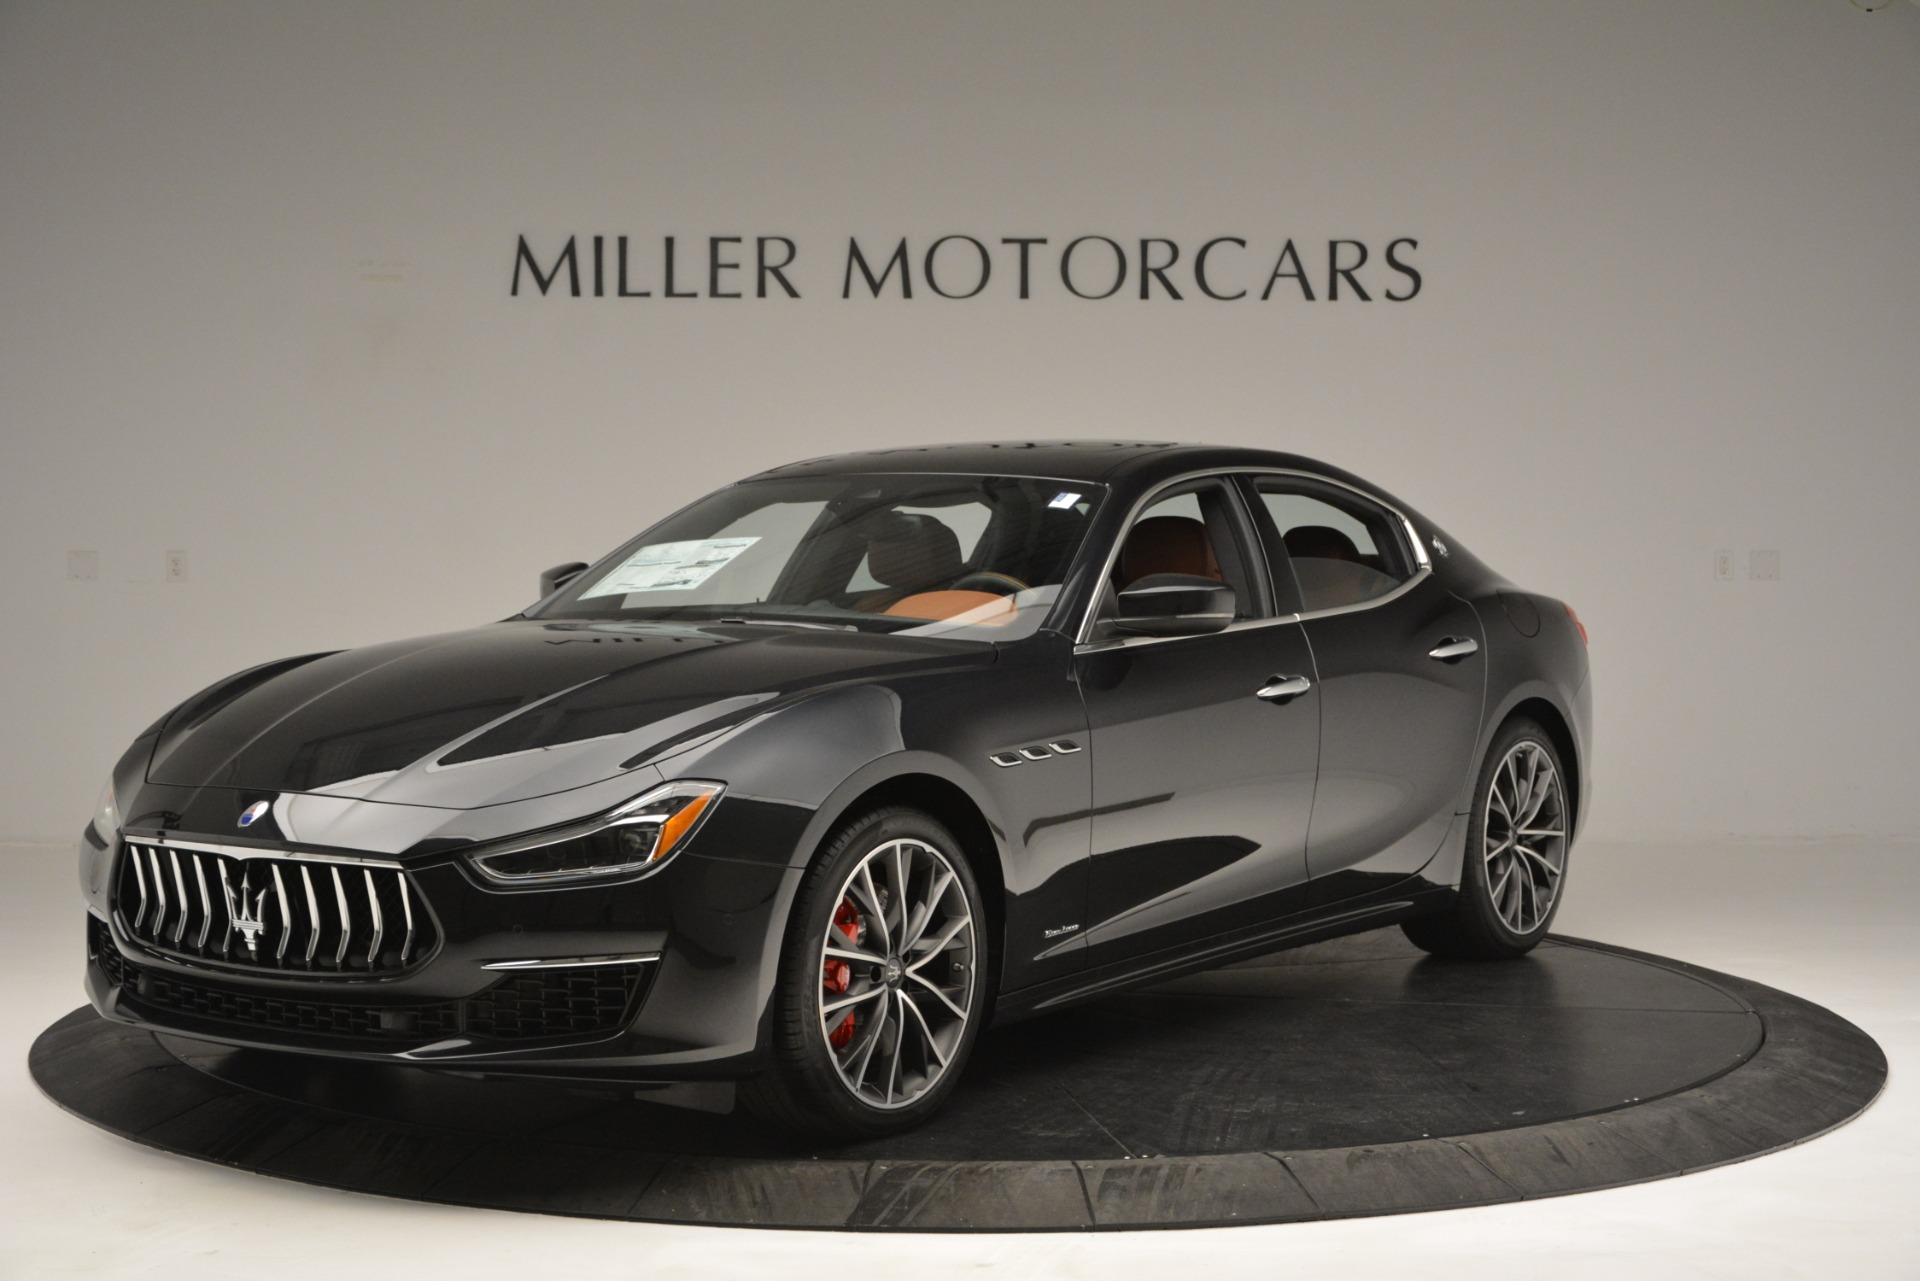 New 2019 Maserati Ghibli S Q4 GranLusso For Sale In Westport, CT 2590_p2